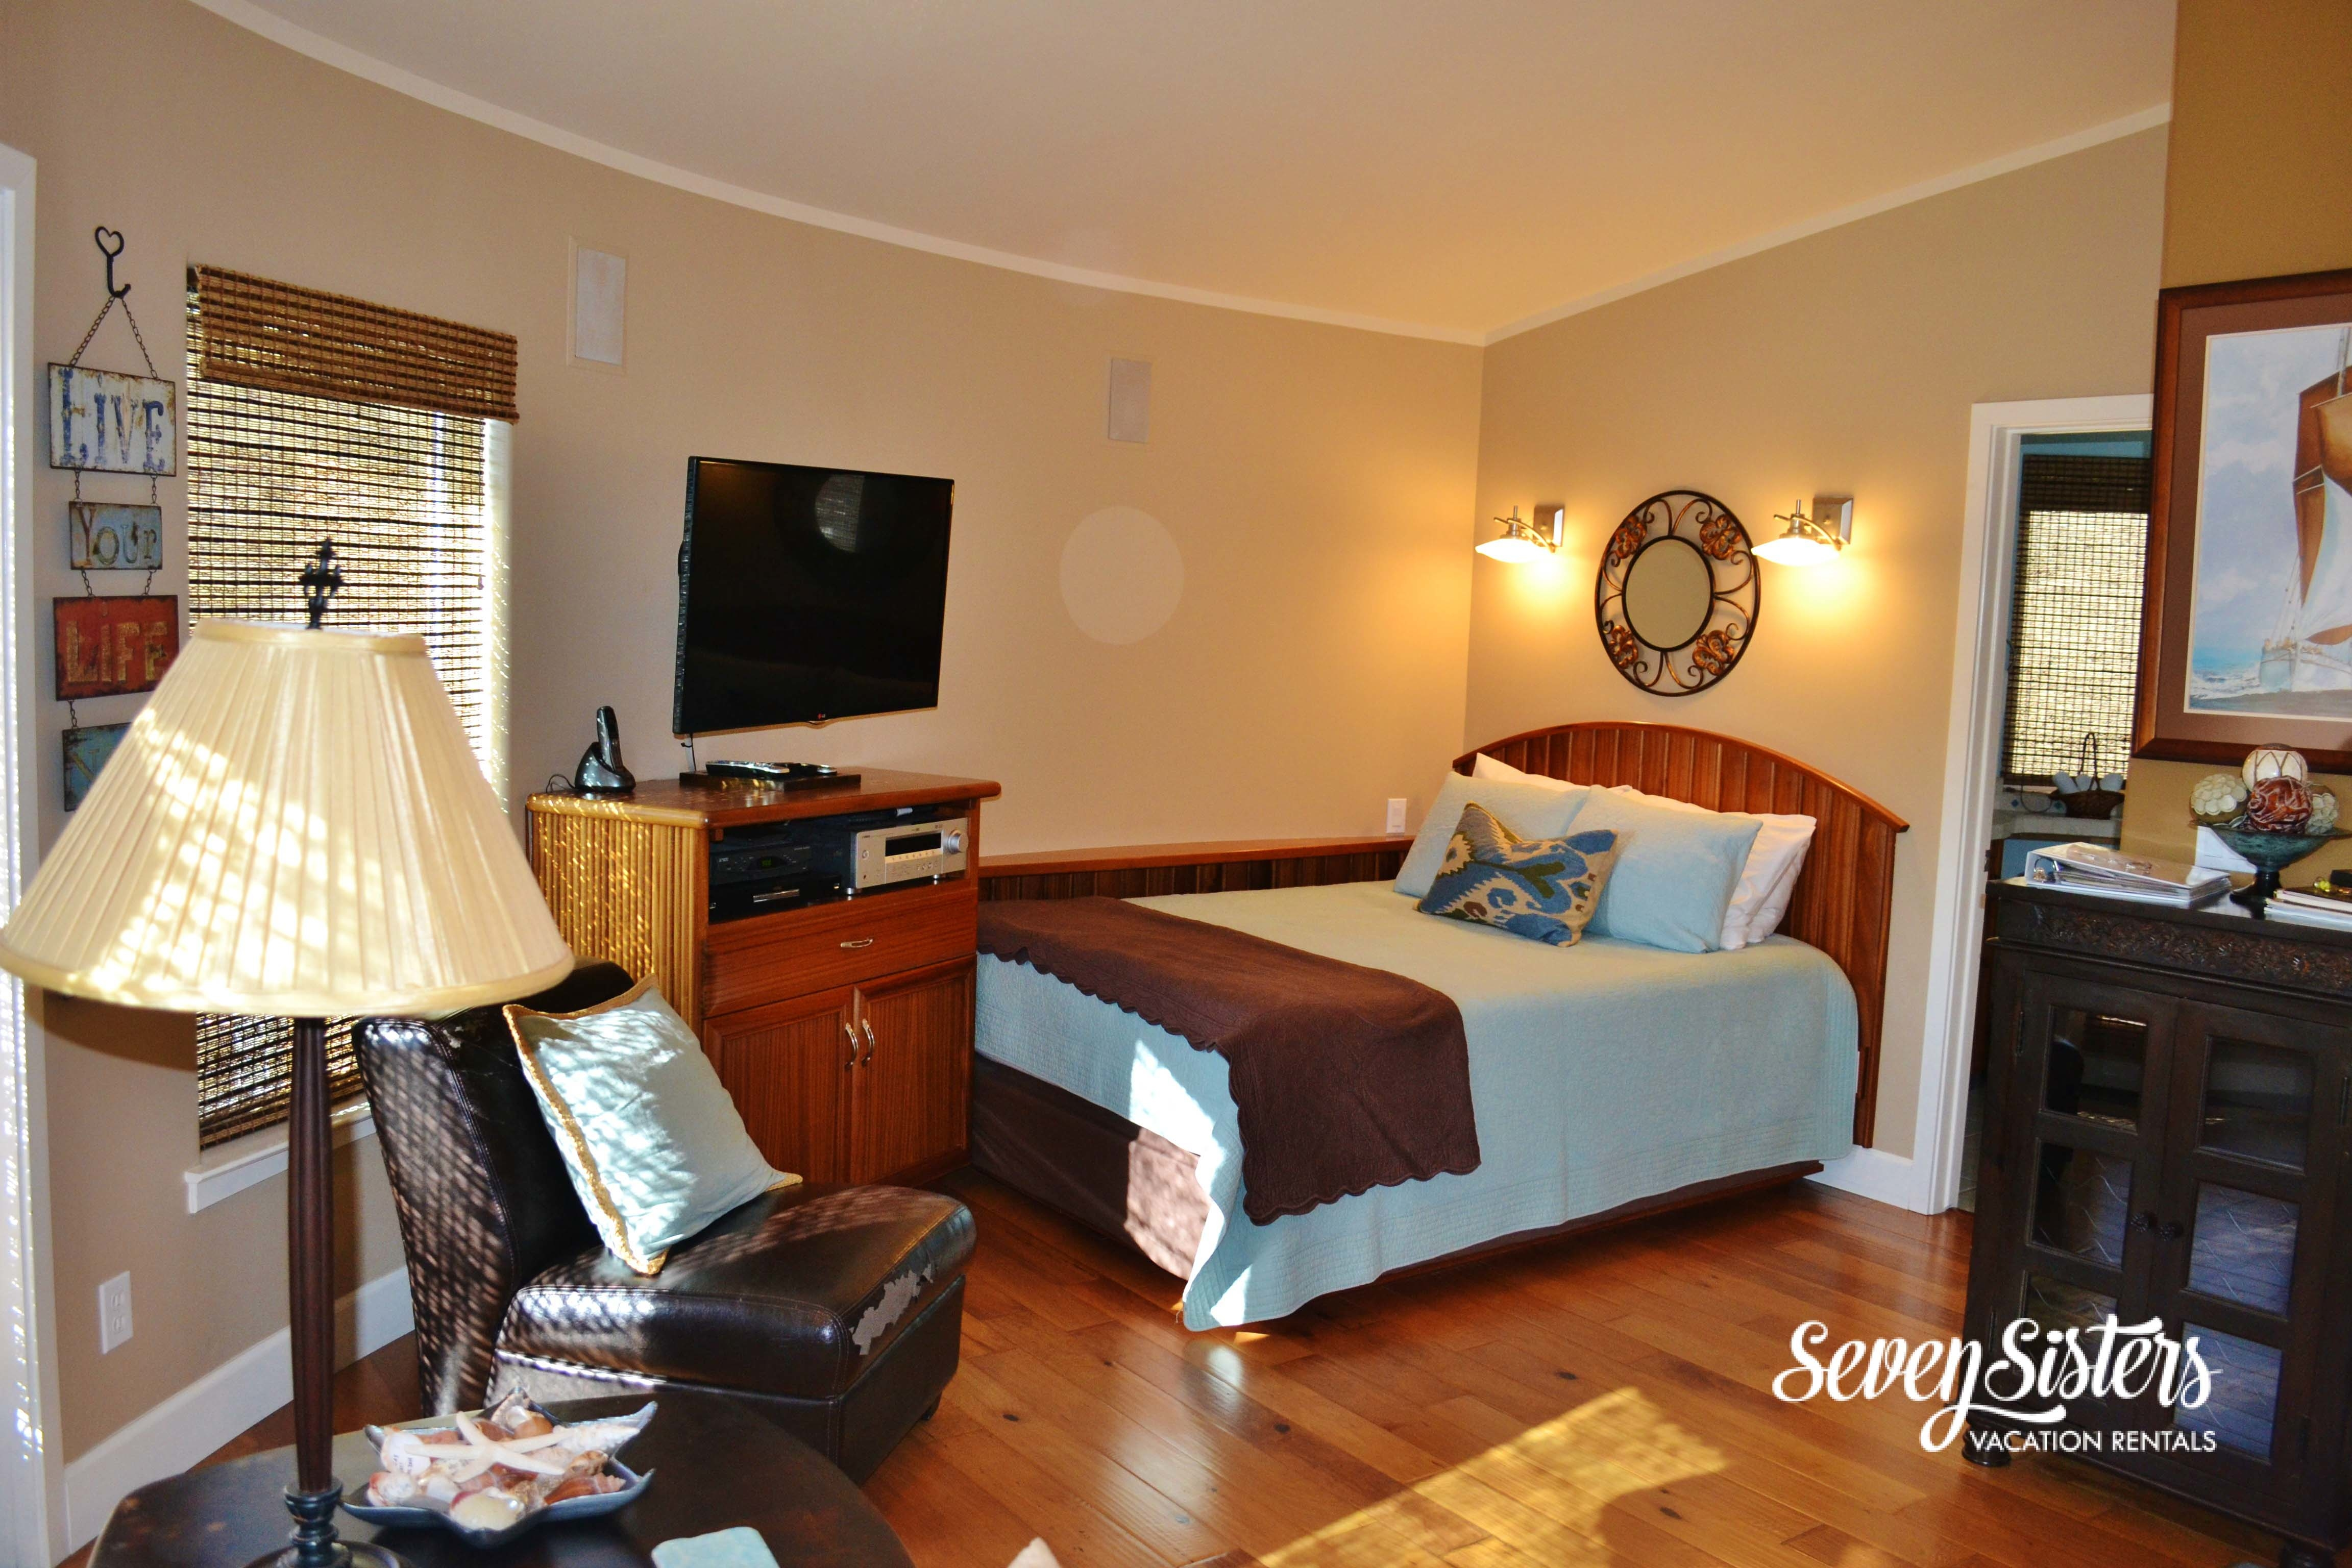 Seven Sisters Vacation Rentals image 8